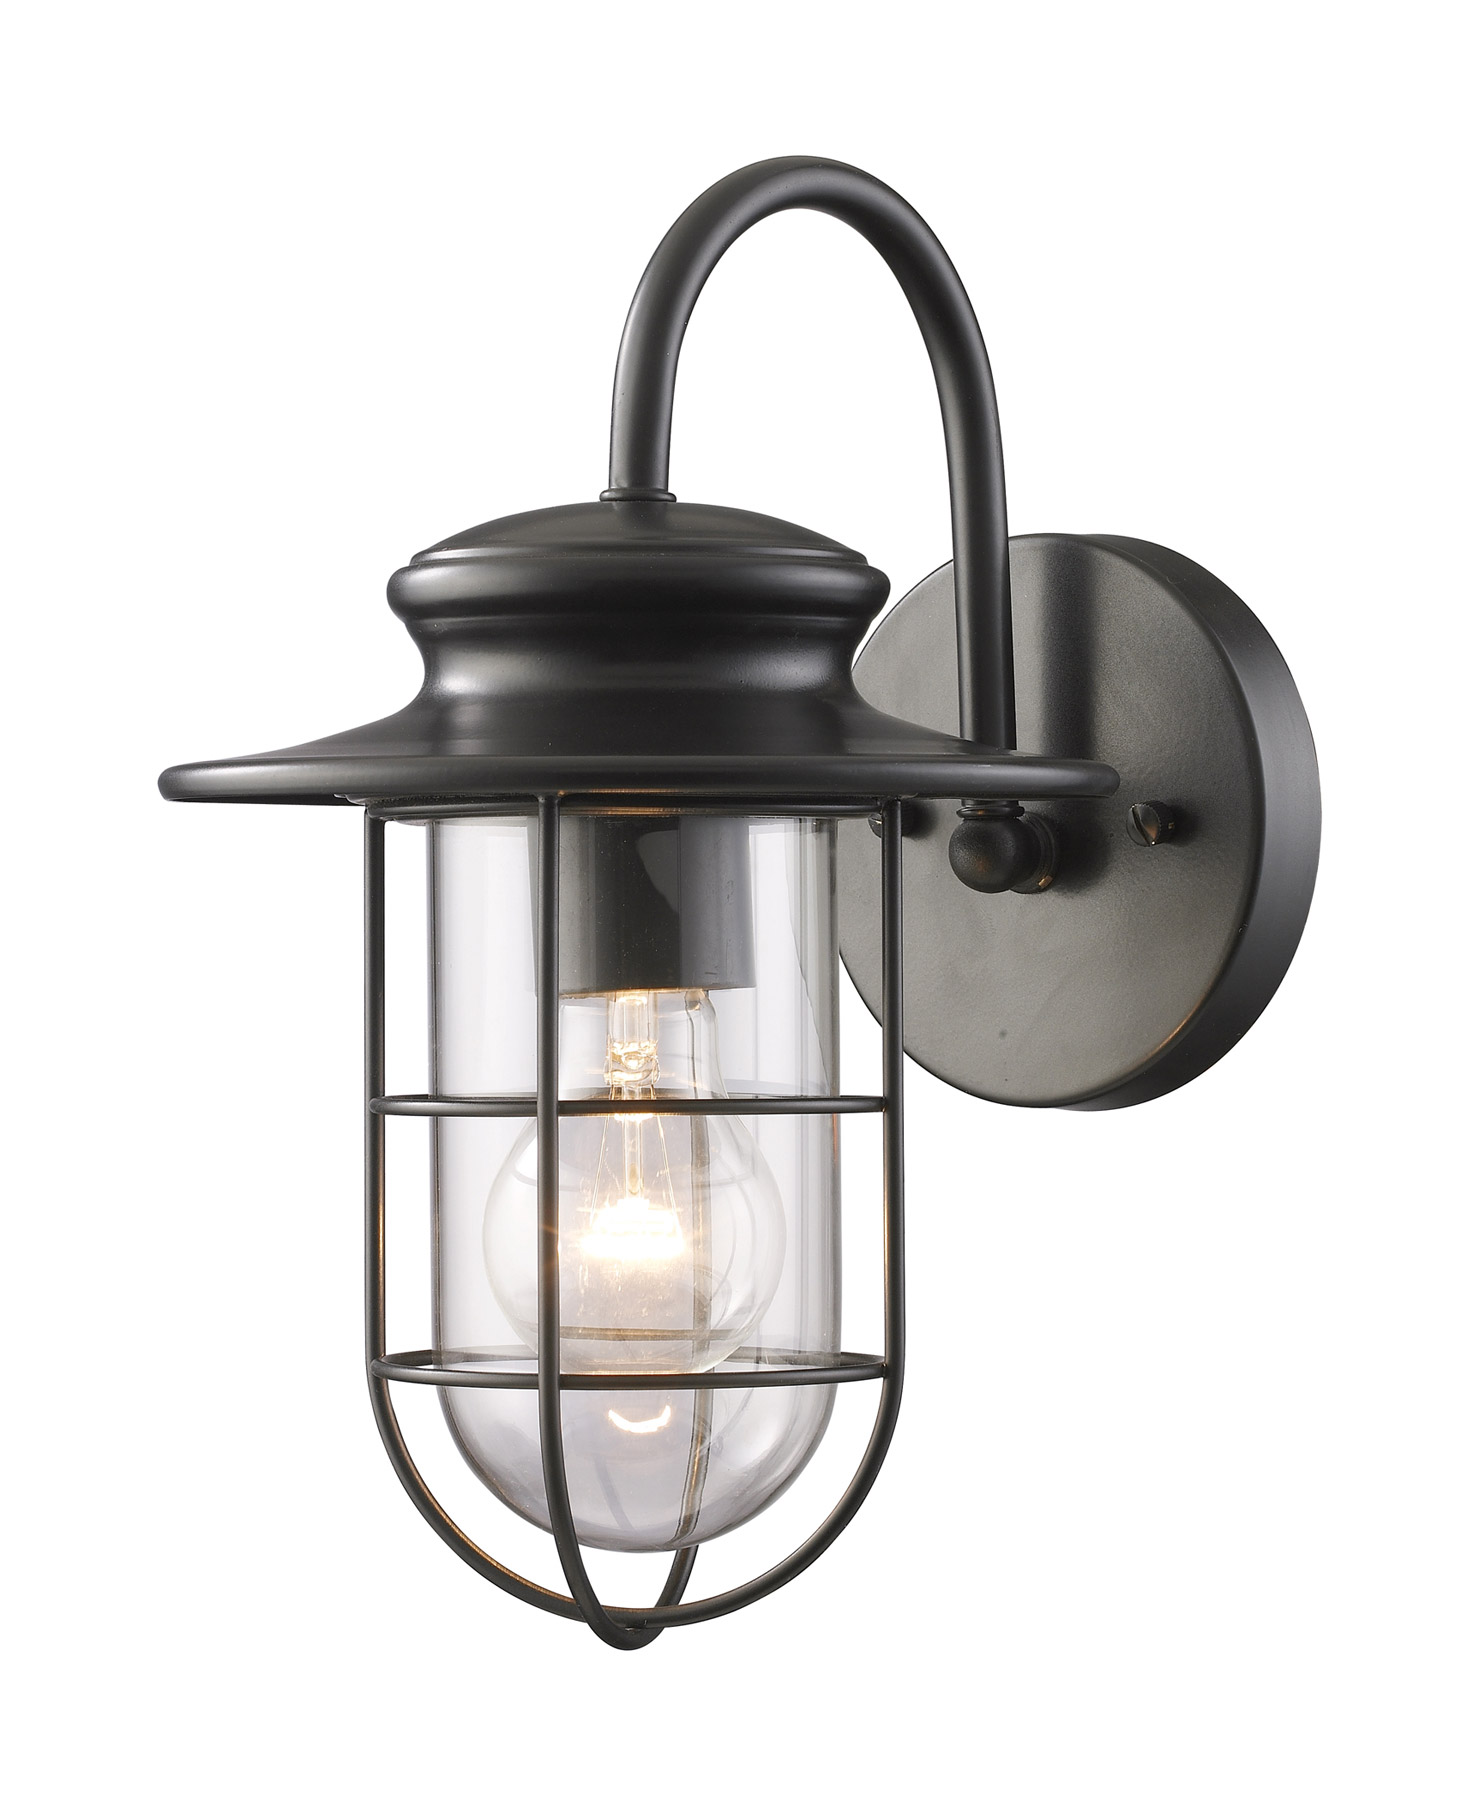 Elk lighting 42284 1 portside outdoor wall mount lantern for Outdoor home lighting fixtures